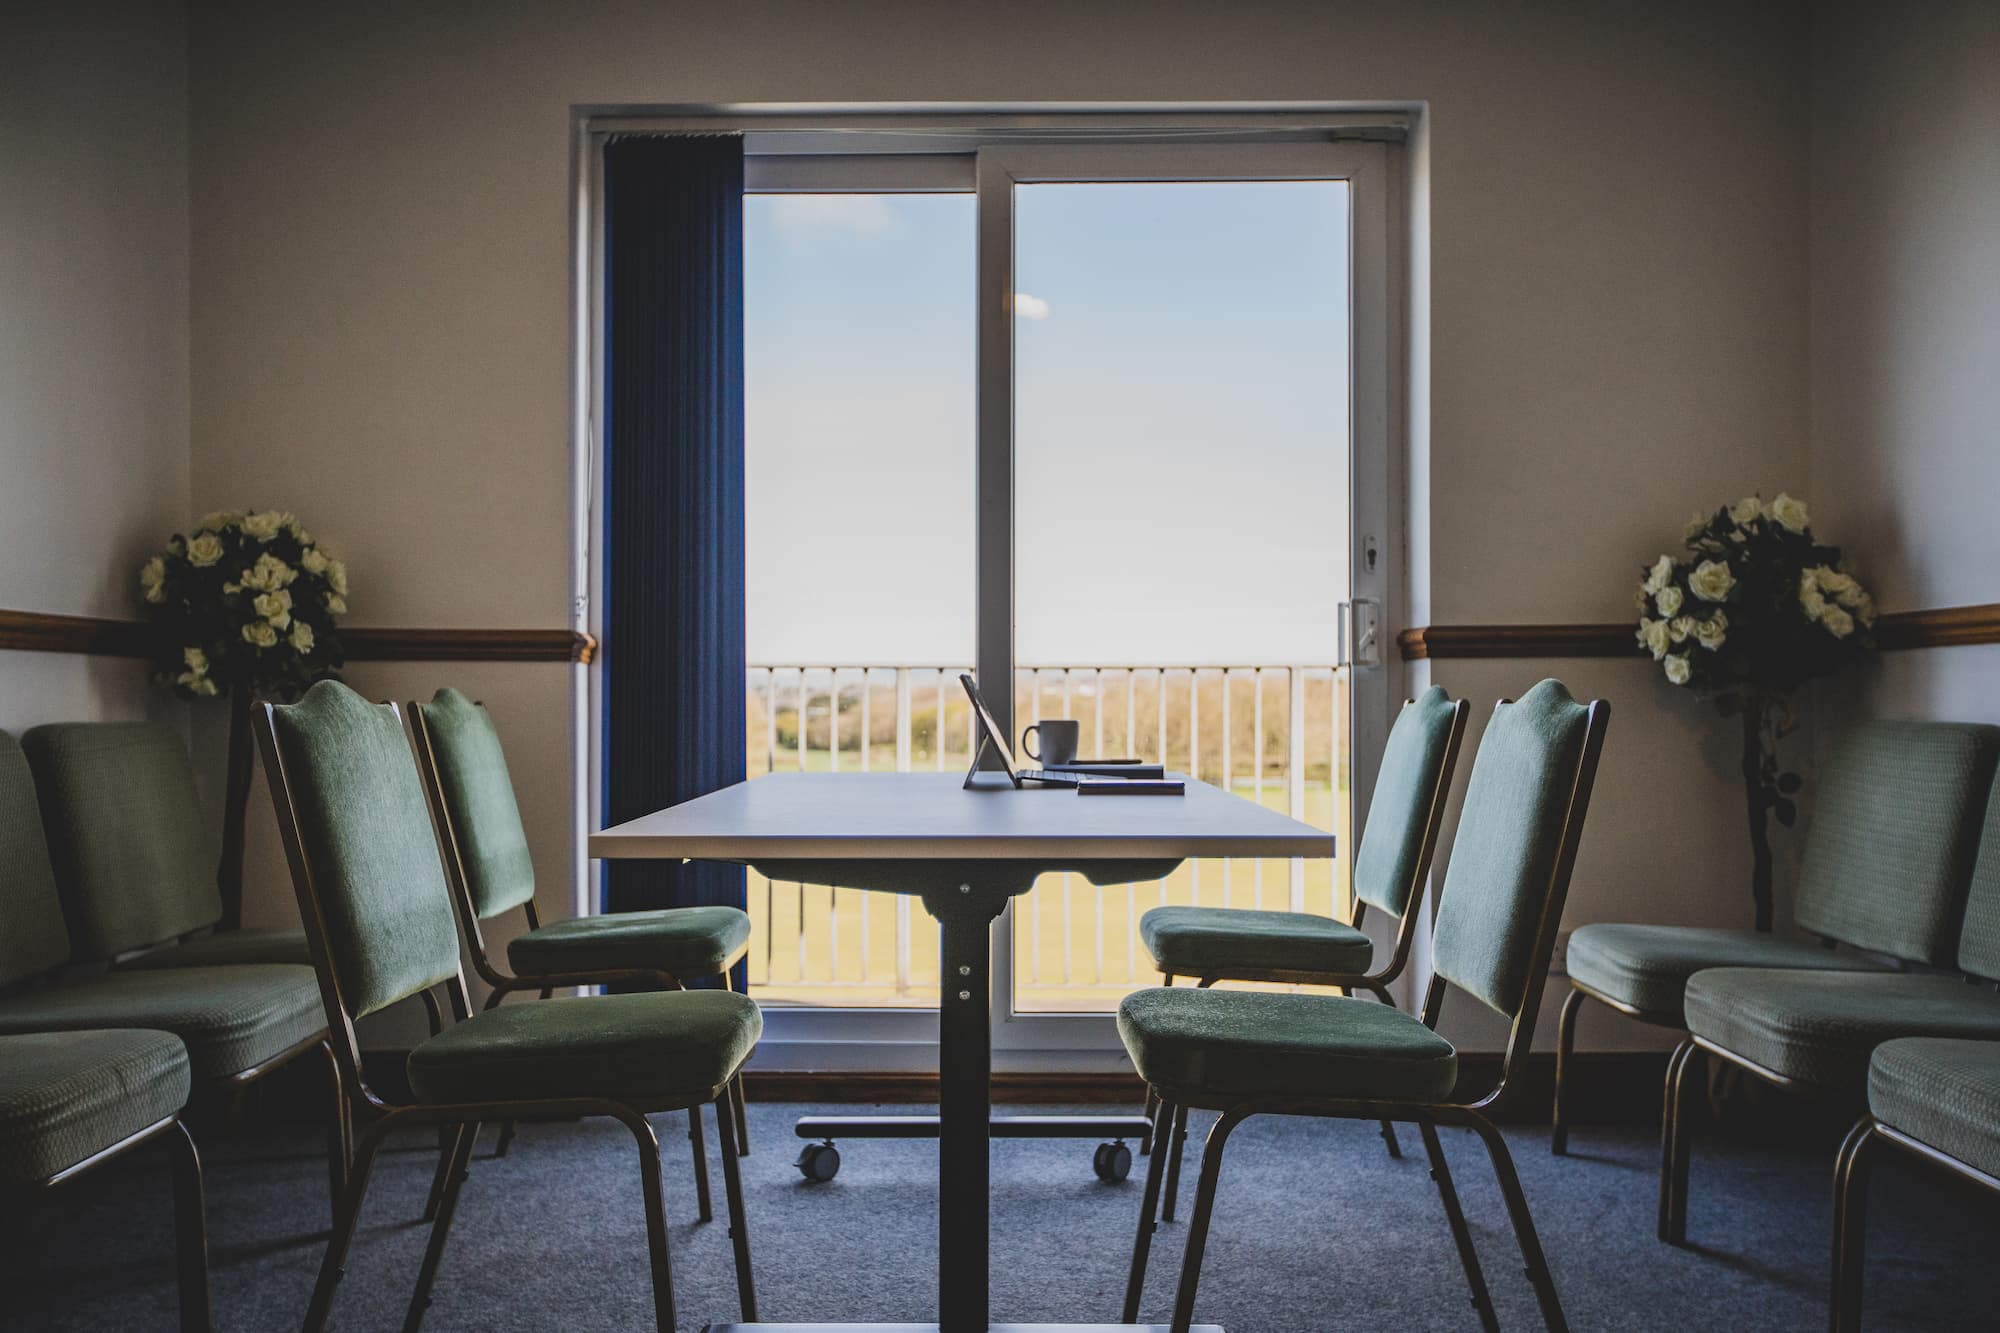 A table and four chairs in front of a window overlooking the grounds.